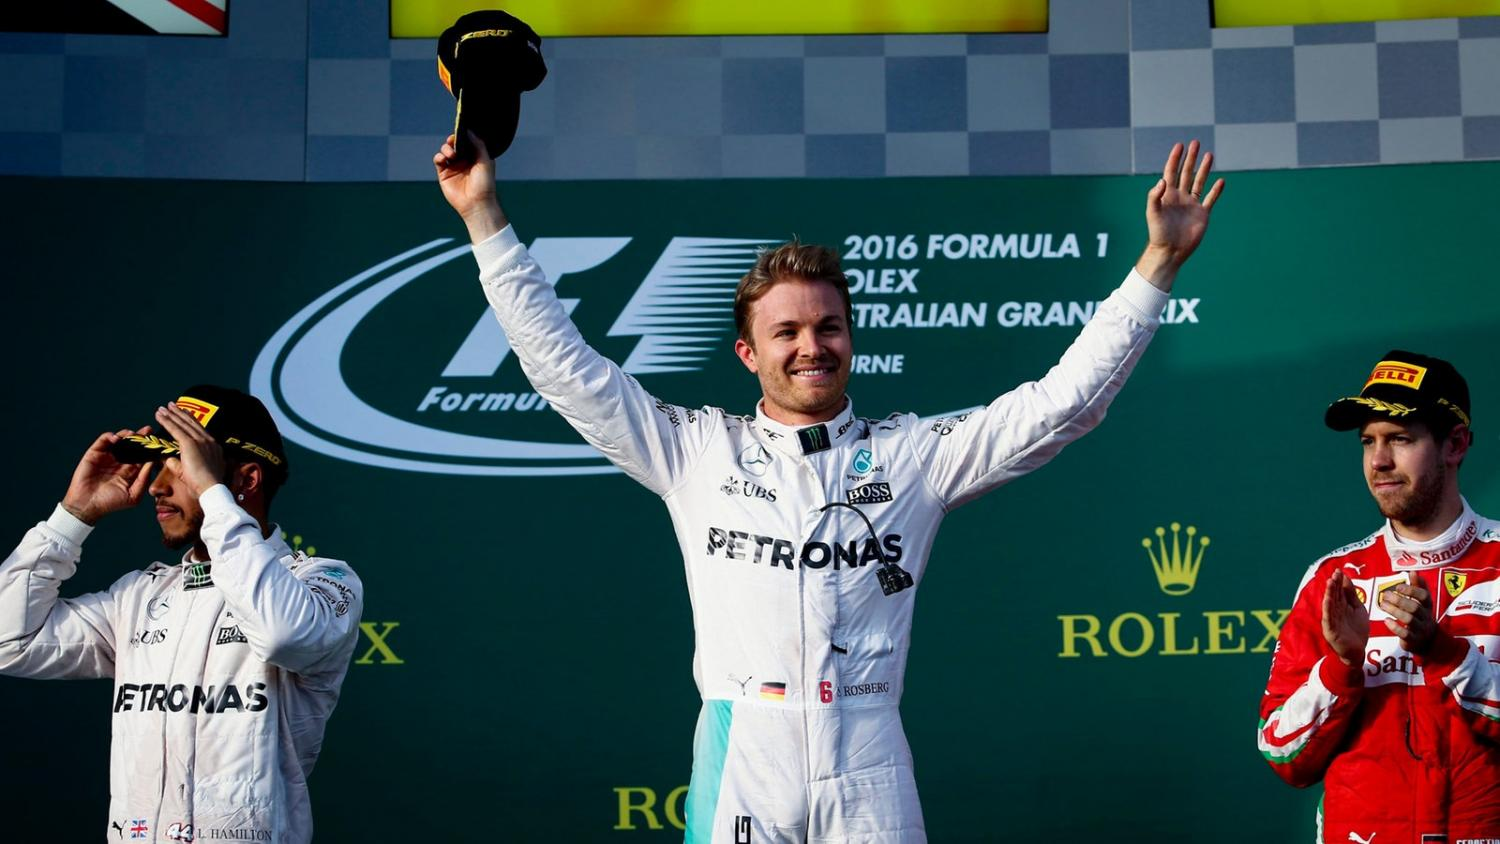 Nico Rosberg takes pole in Spain, Kettle Mag